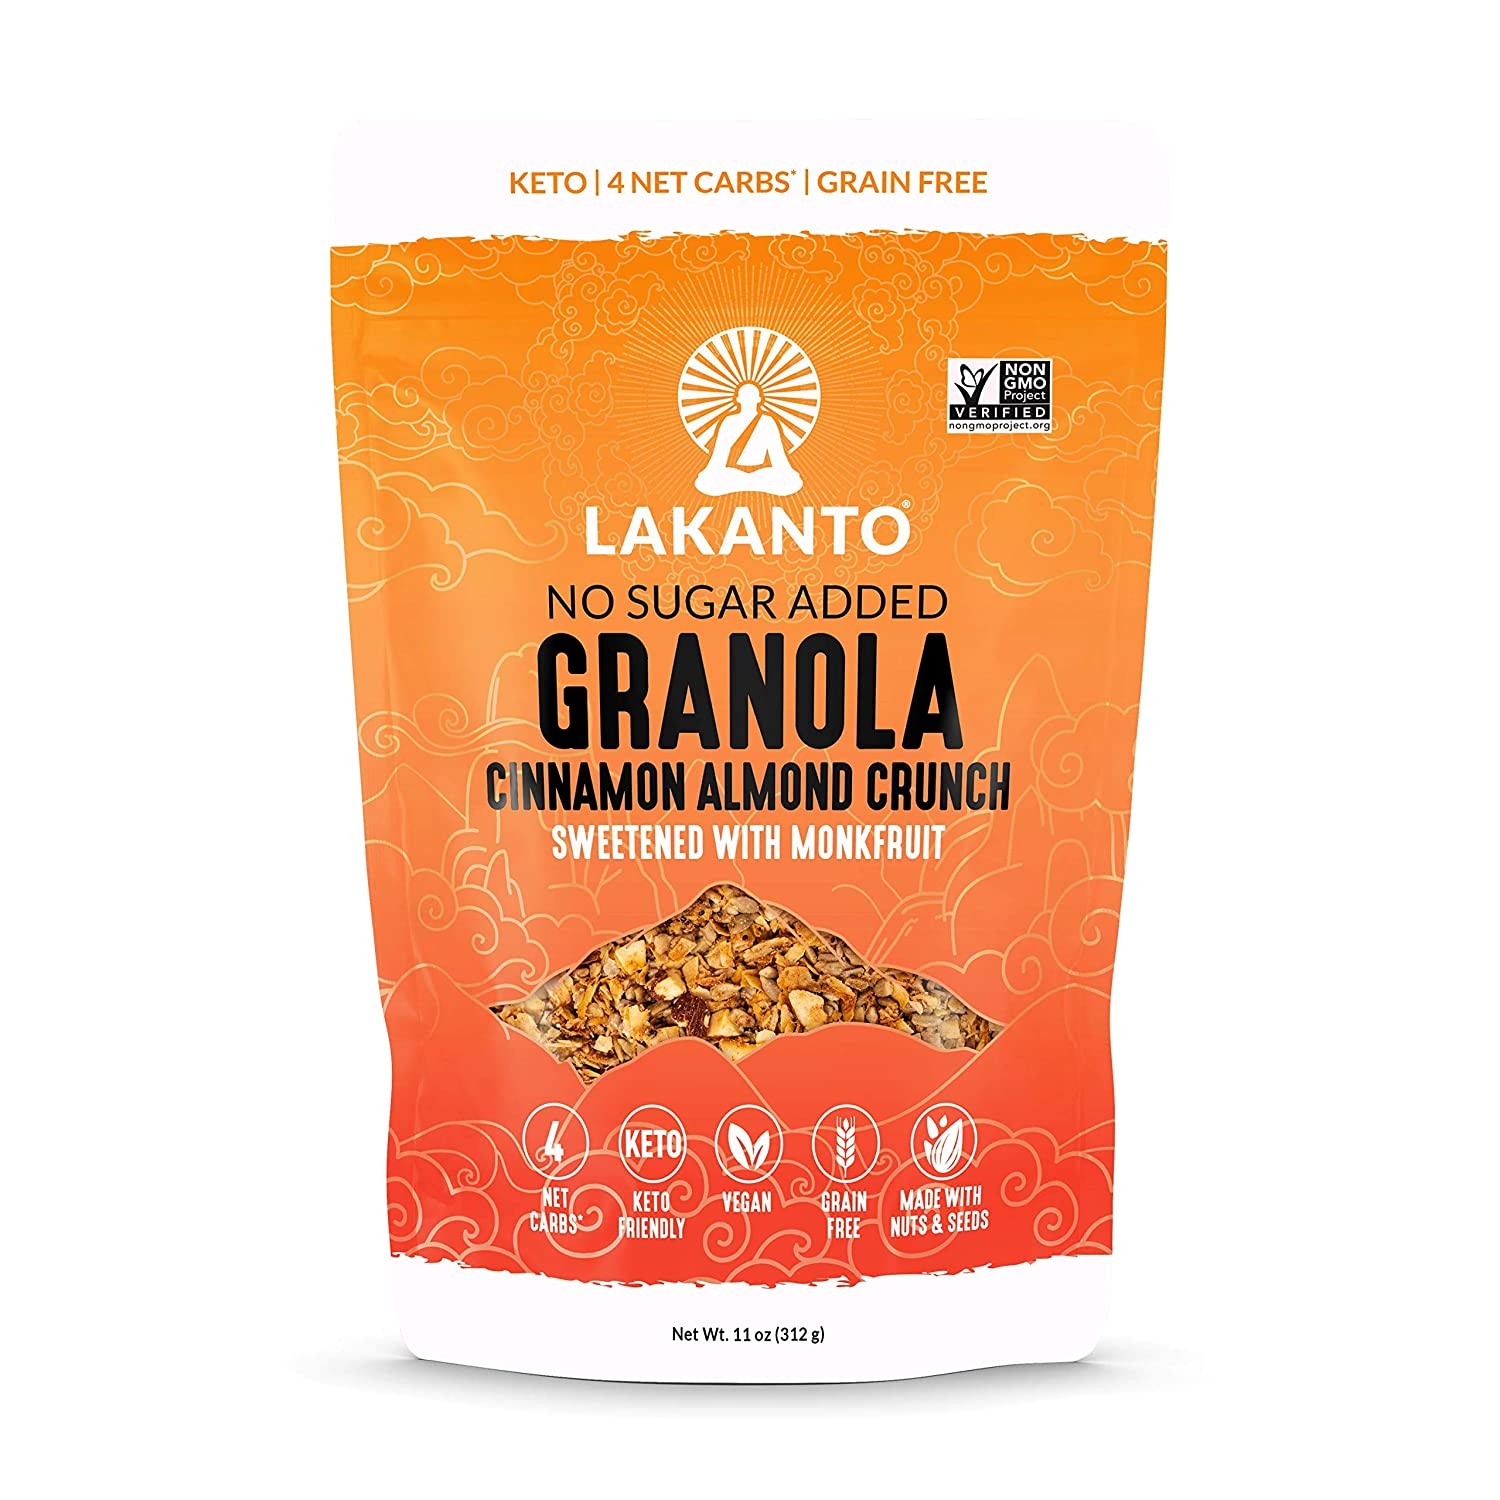 Lakanto Healthy Quick Breakfast Granola Crunch Cereal with Monk Fruit, Keto Snack, Sugar Free, Vegan, Gluten Free & Grain Free, Cinnamon/Almond, 11 Ounce